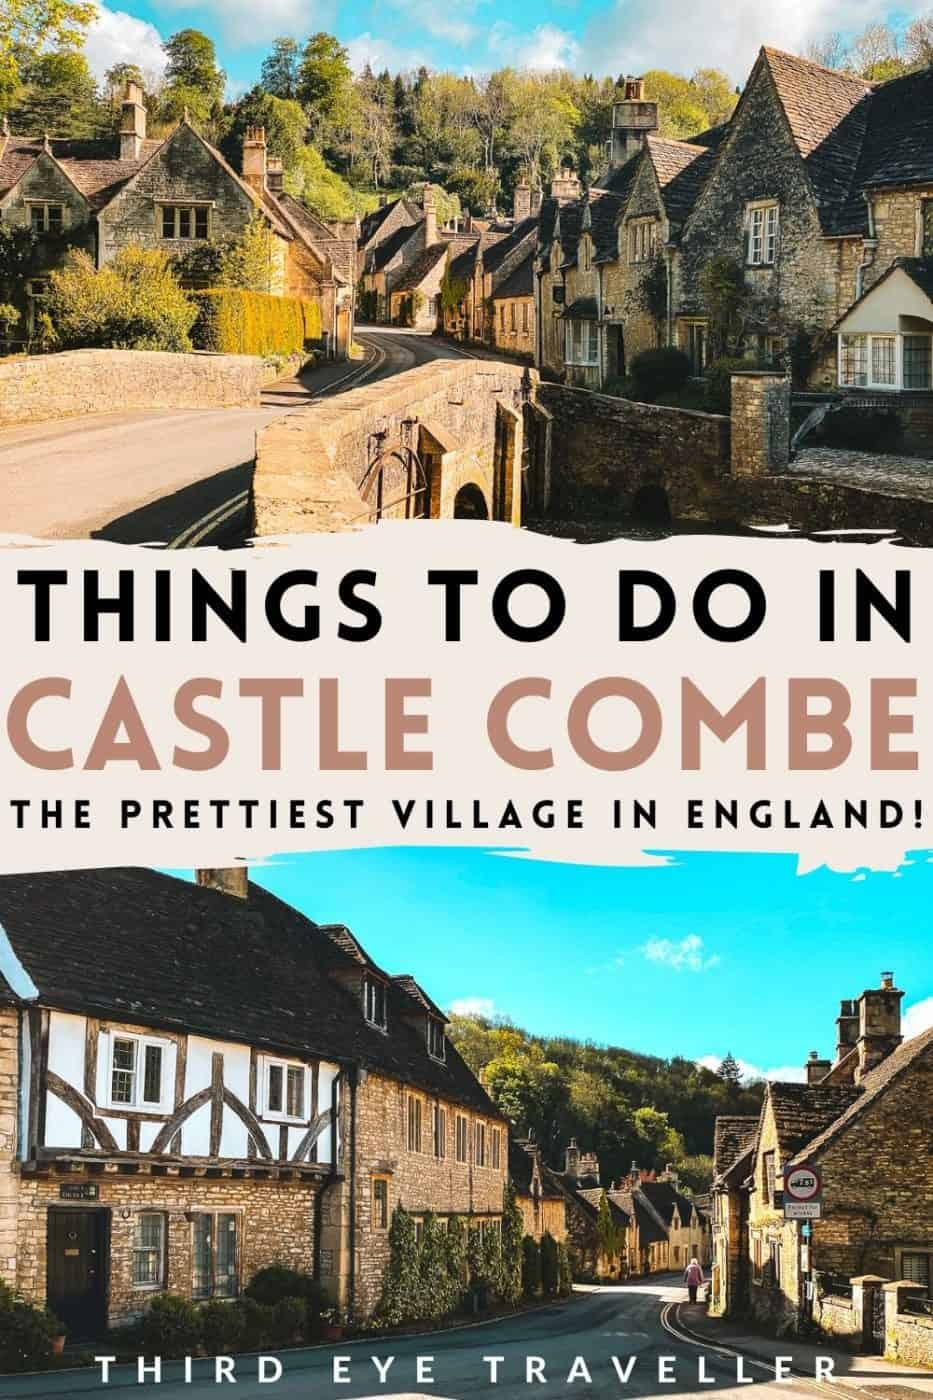 Things to do in Castle Combe village